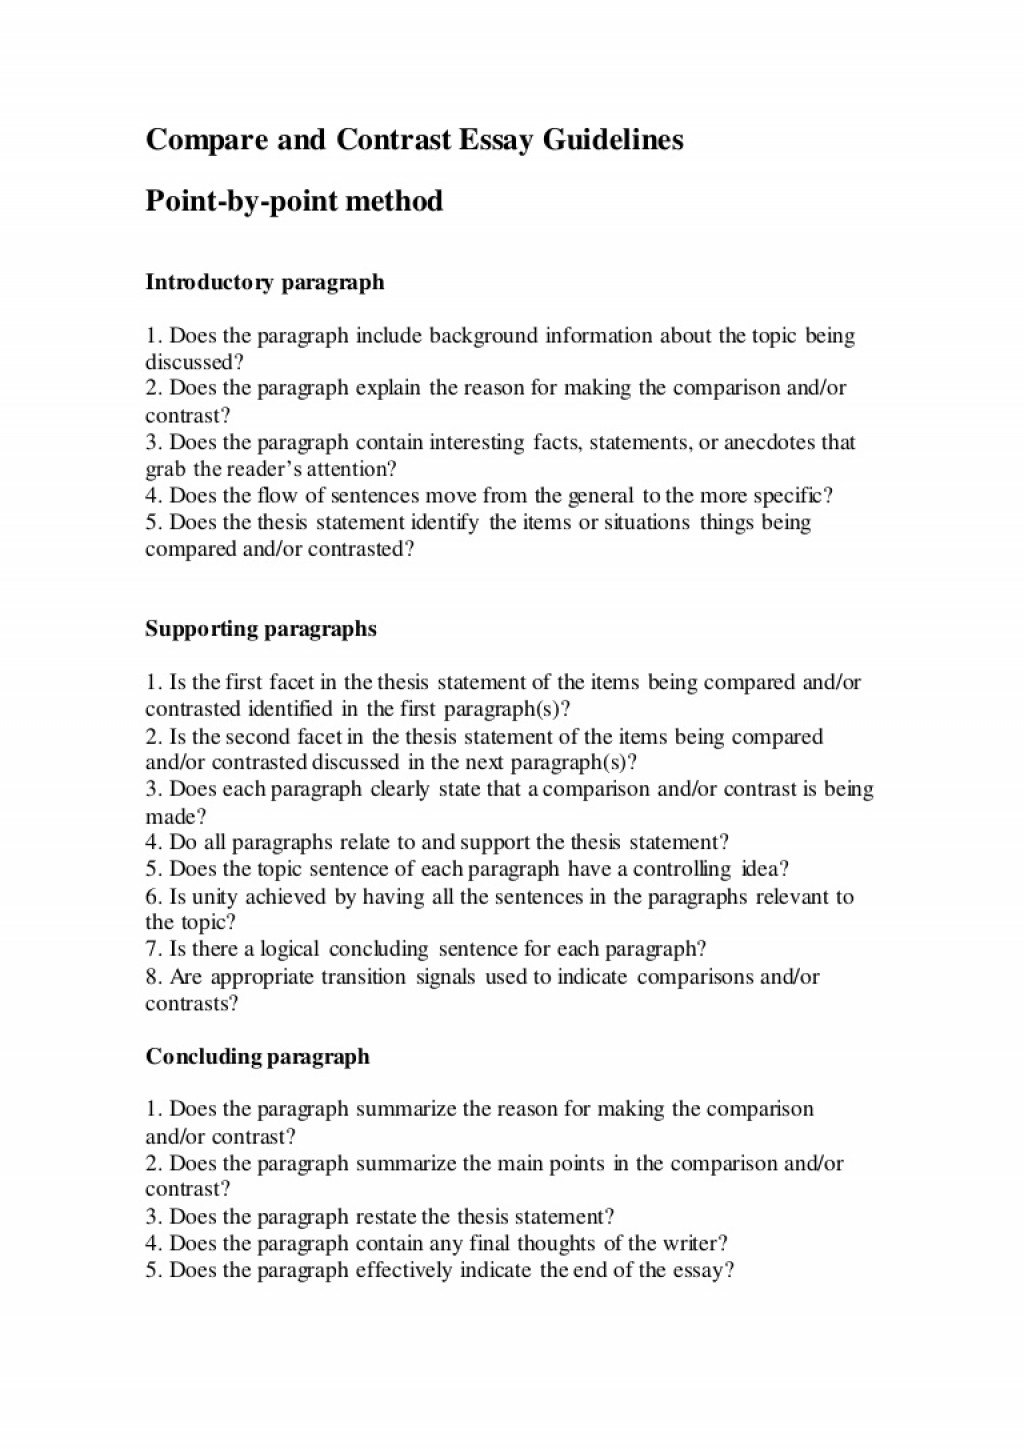 023 Compareandcontrastessayguidelines Thumbnail Thesis Statement For Compare And Contrast Essay Shocking Generator How To Make A Large